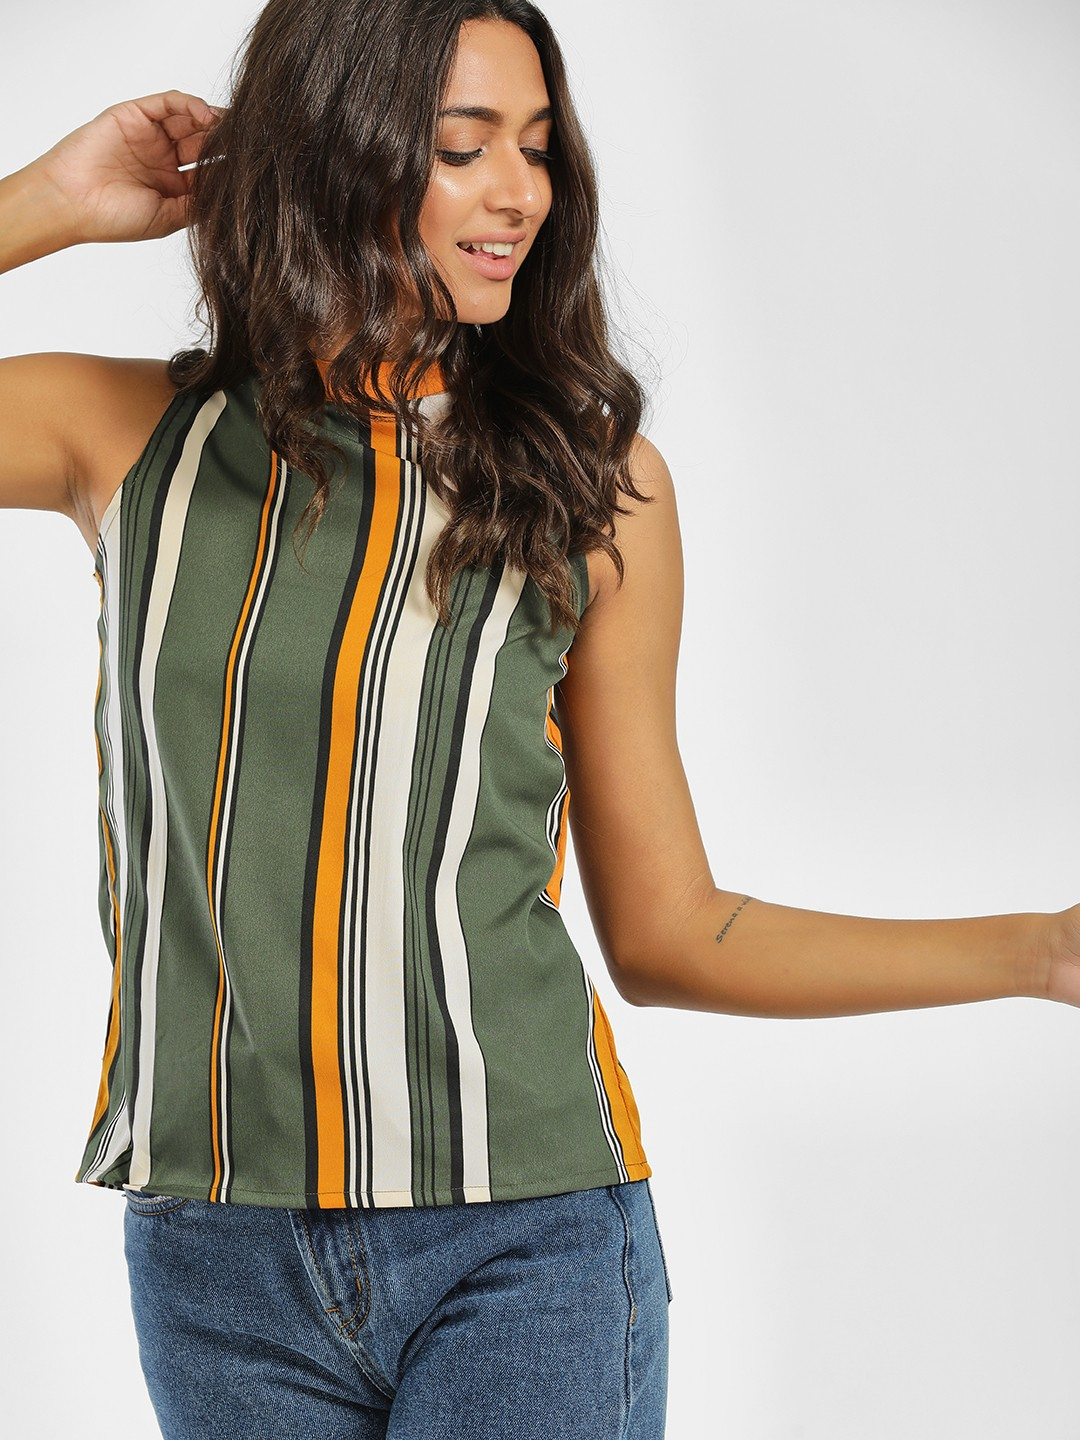 AND Green Striped Sleeveless Top 1